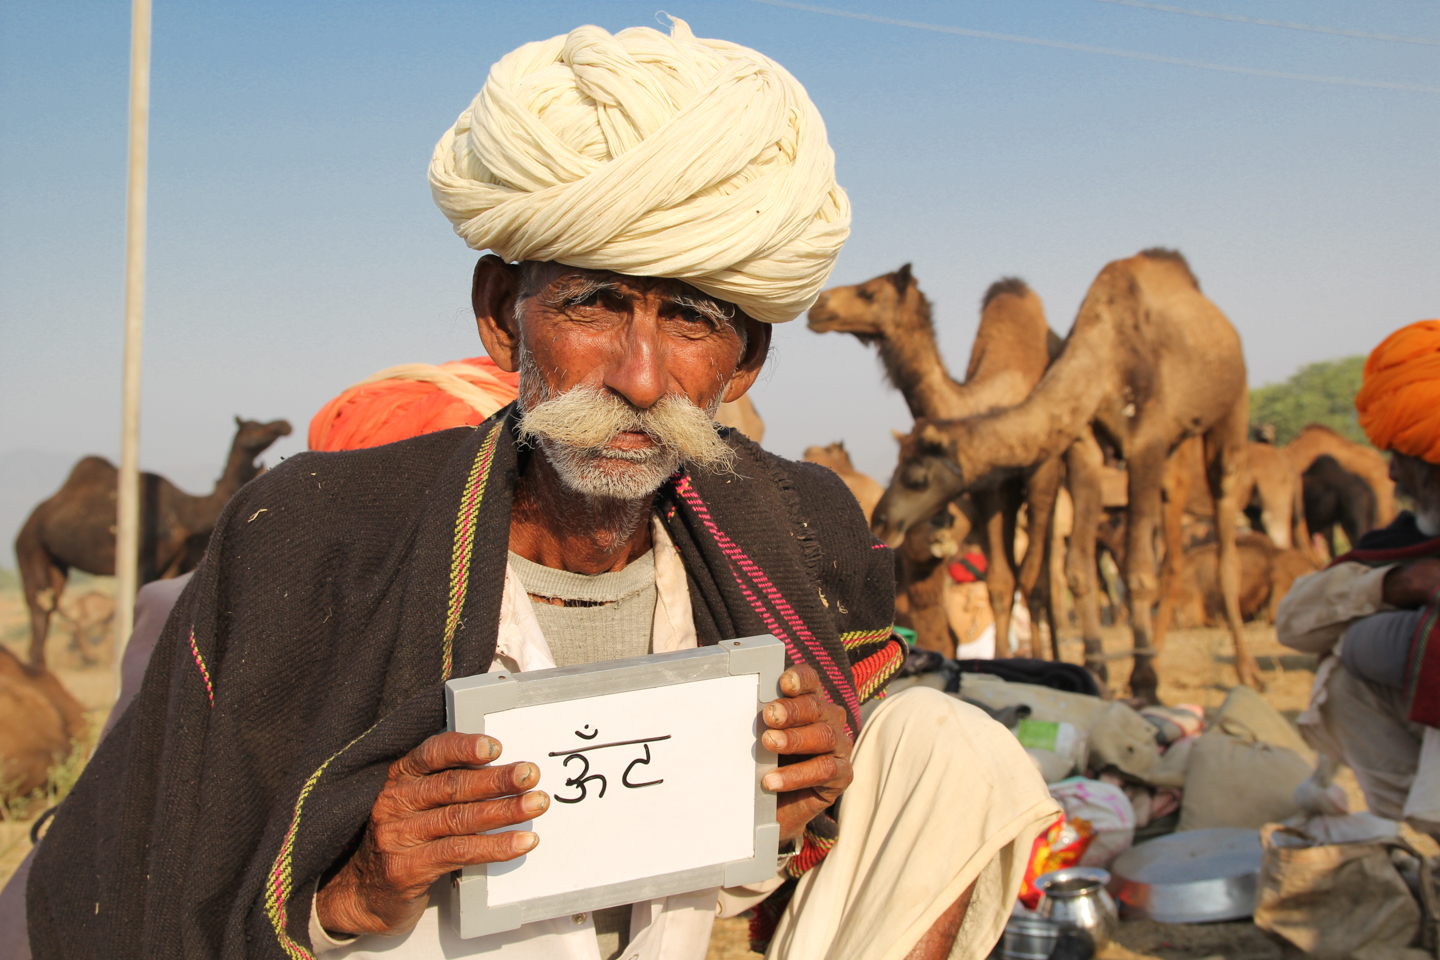 Bakram Devashi from Rajasthan's Nagaur district can't imagine life without his herd of camels. His mornings start with a cup of camel milk chai, and his days end with the same.